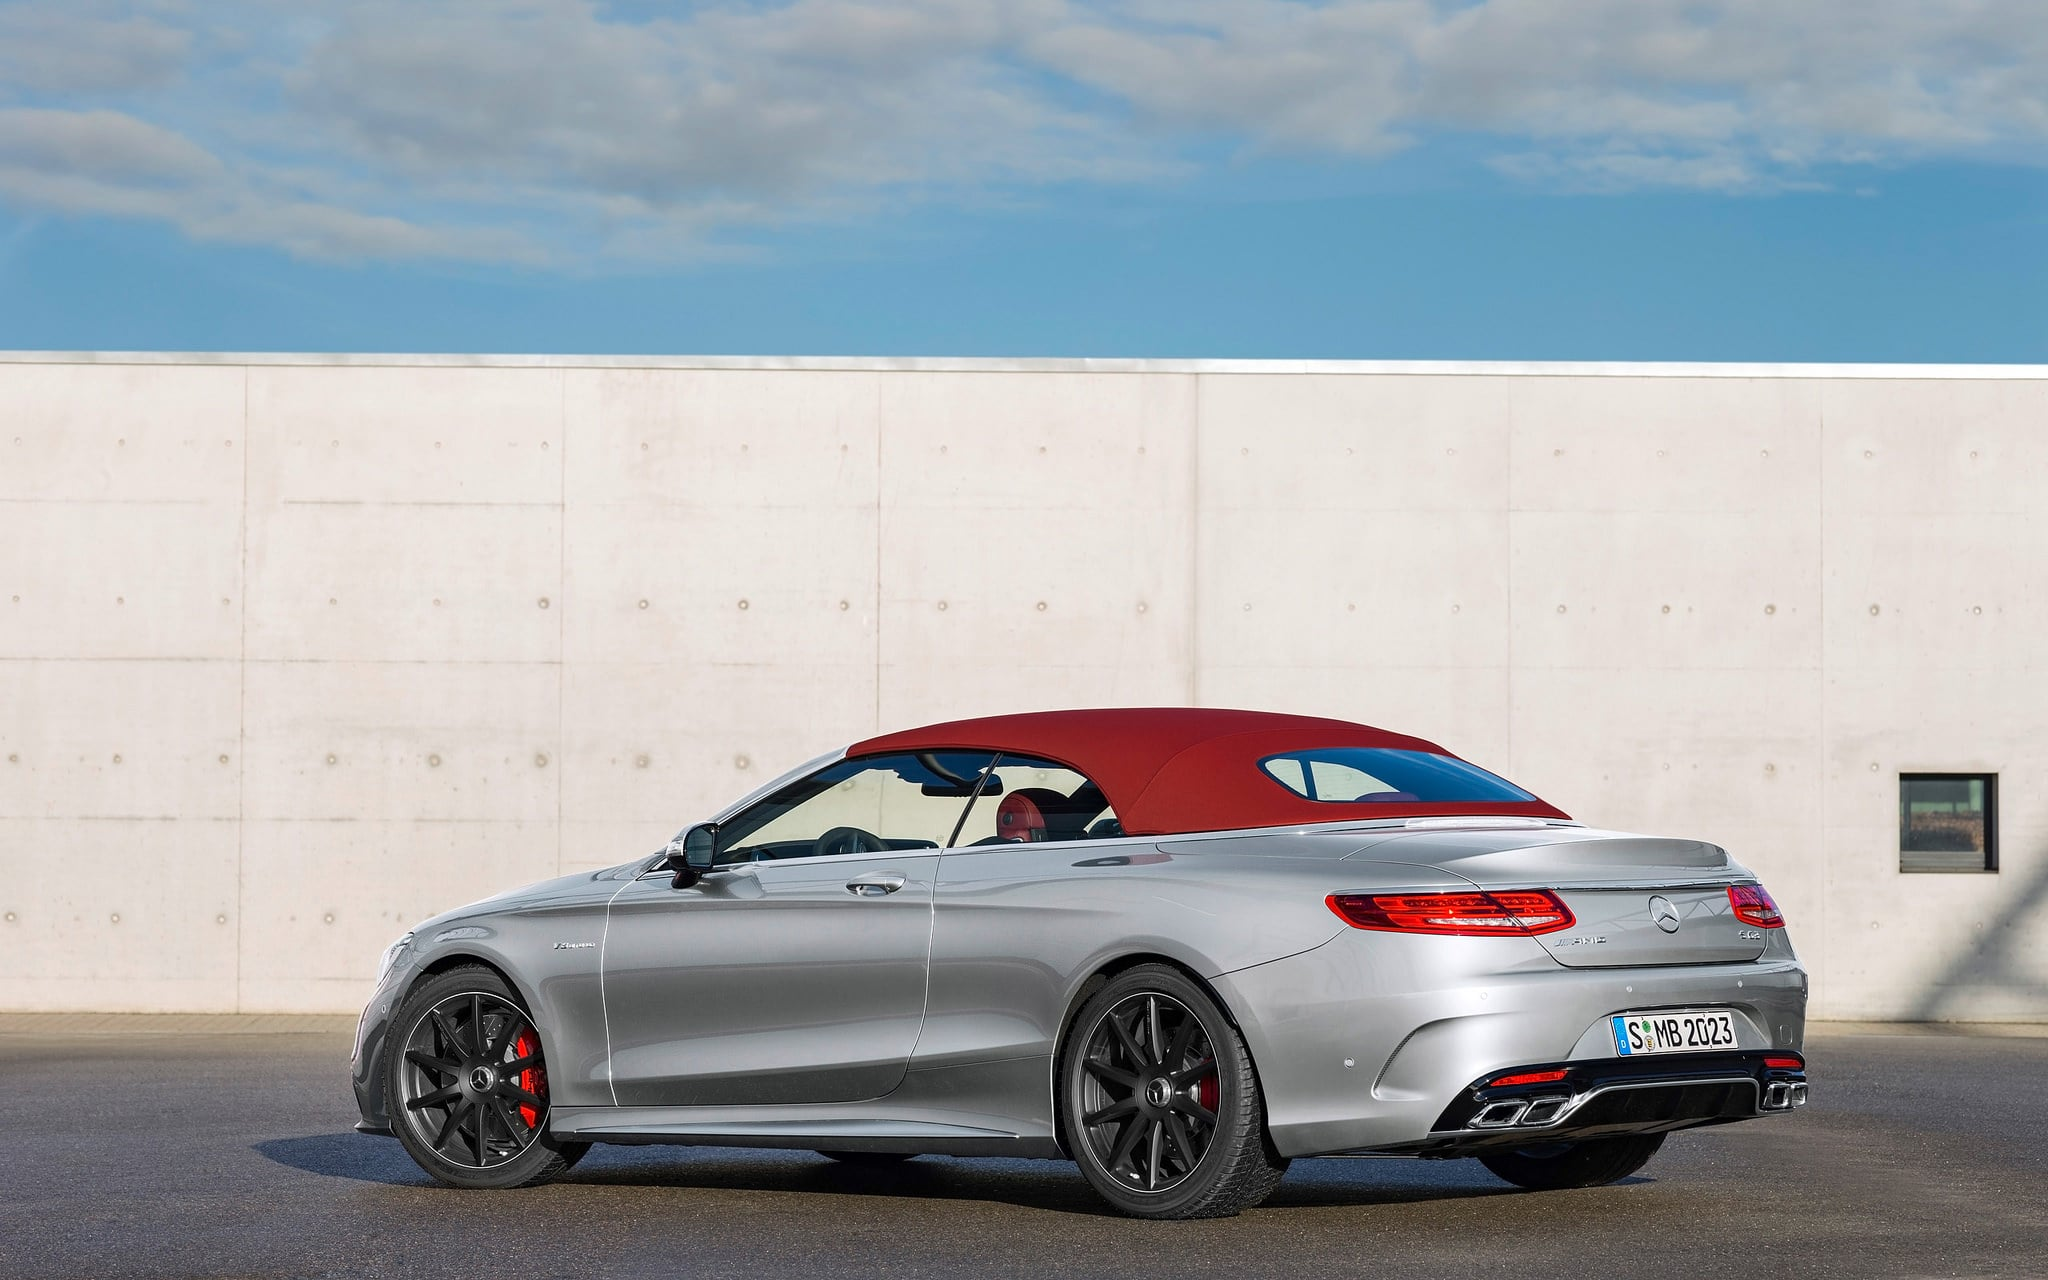 Mercedes Benz Amg >> 2016 Mercedes AMG S63 cabriolet wallpapers HD